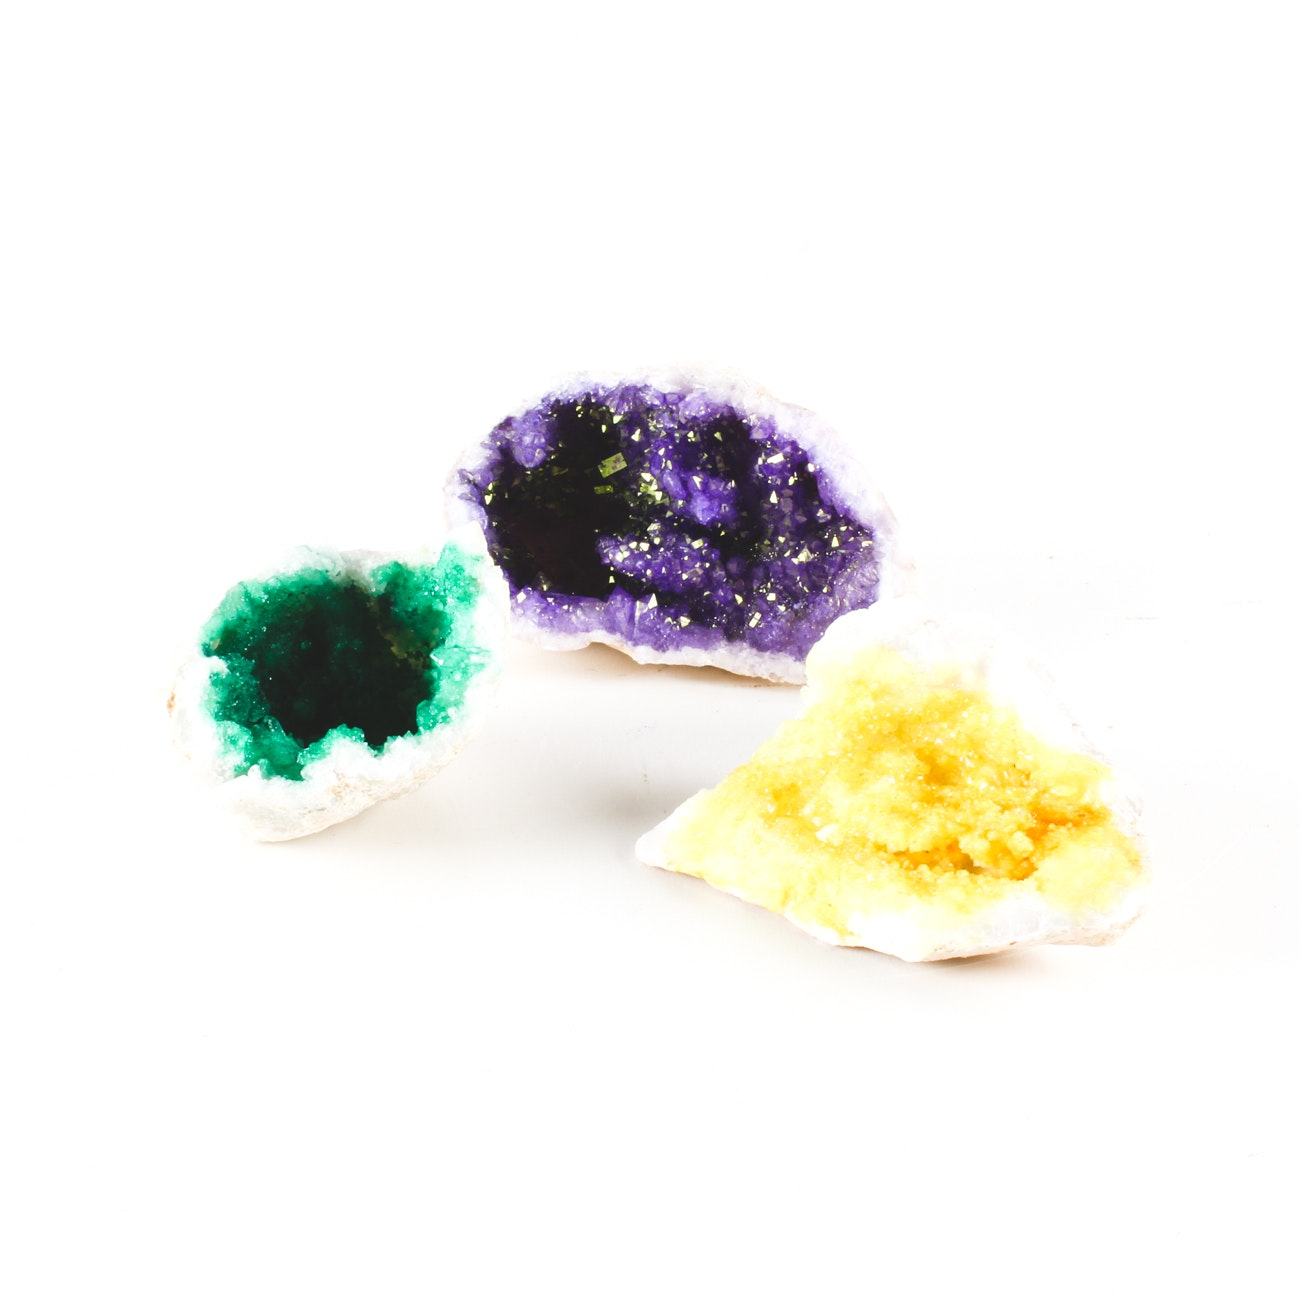 Collection of Three Dyed Iridescent Quartz Crystal Moroccan Geodes